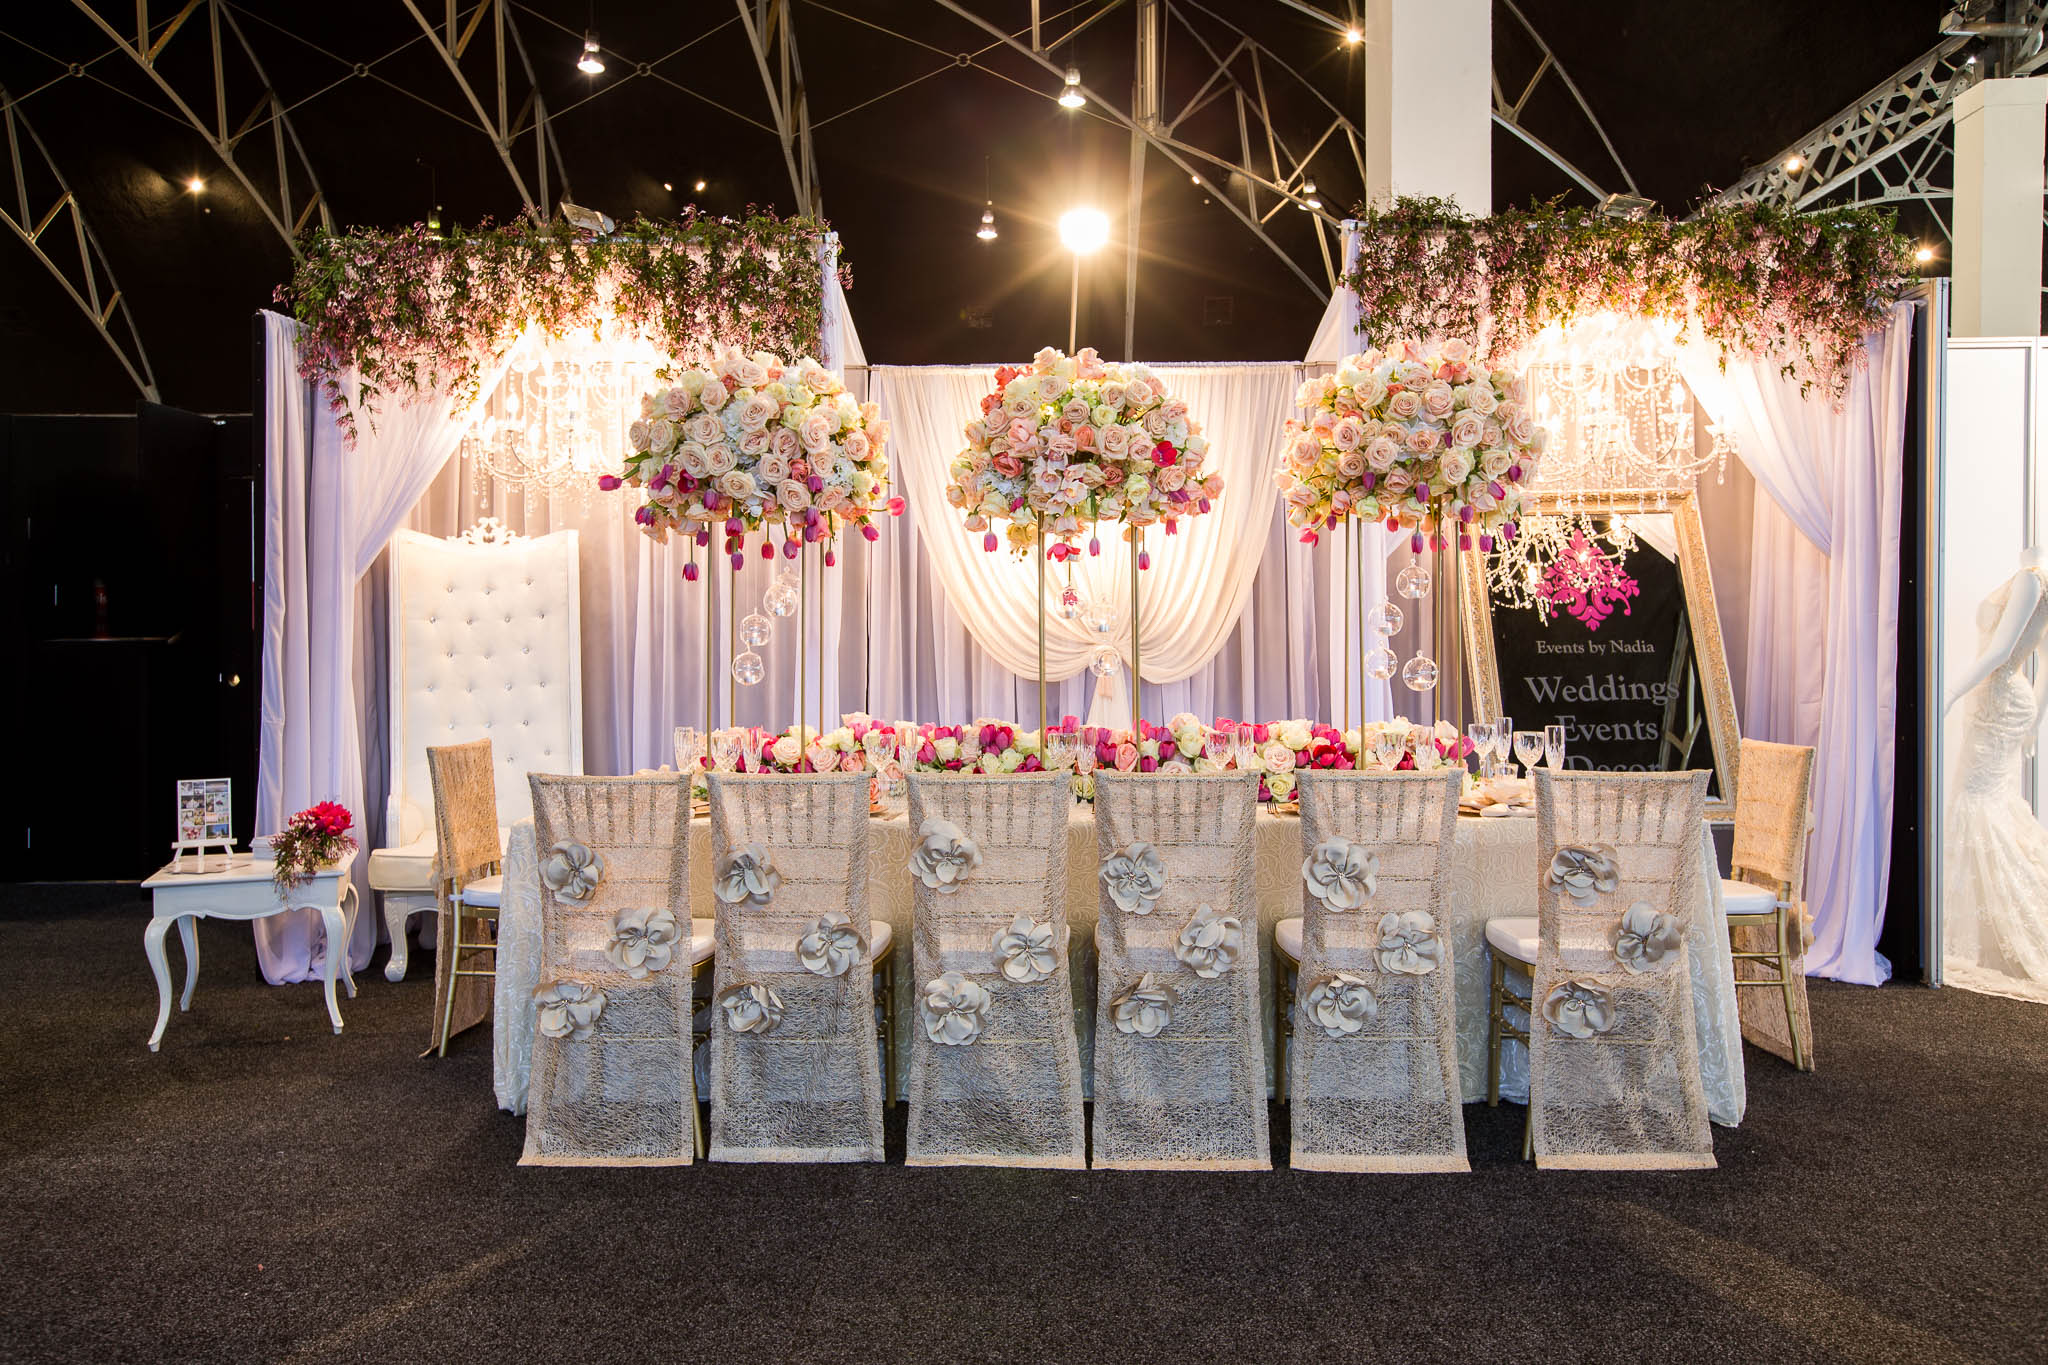 Kings table centrepiece consisting of gold Carly stands with fresh florals, hanging tea lights, floral runner and PB Luxury Linen Champagne Heather chair backs, white chiffon backdrop with canopy, florals and 16 arm wrought iron chandeliers - Image 1.jpg